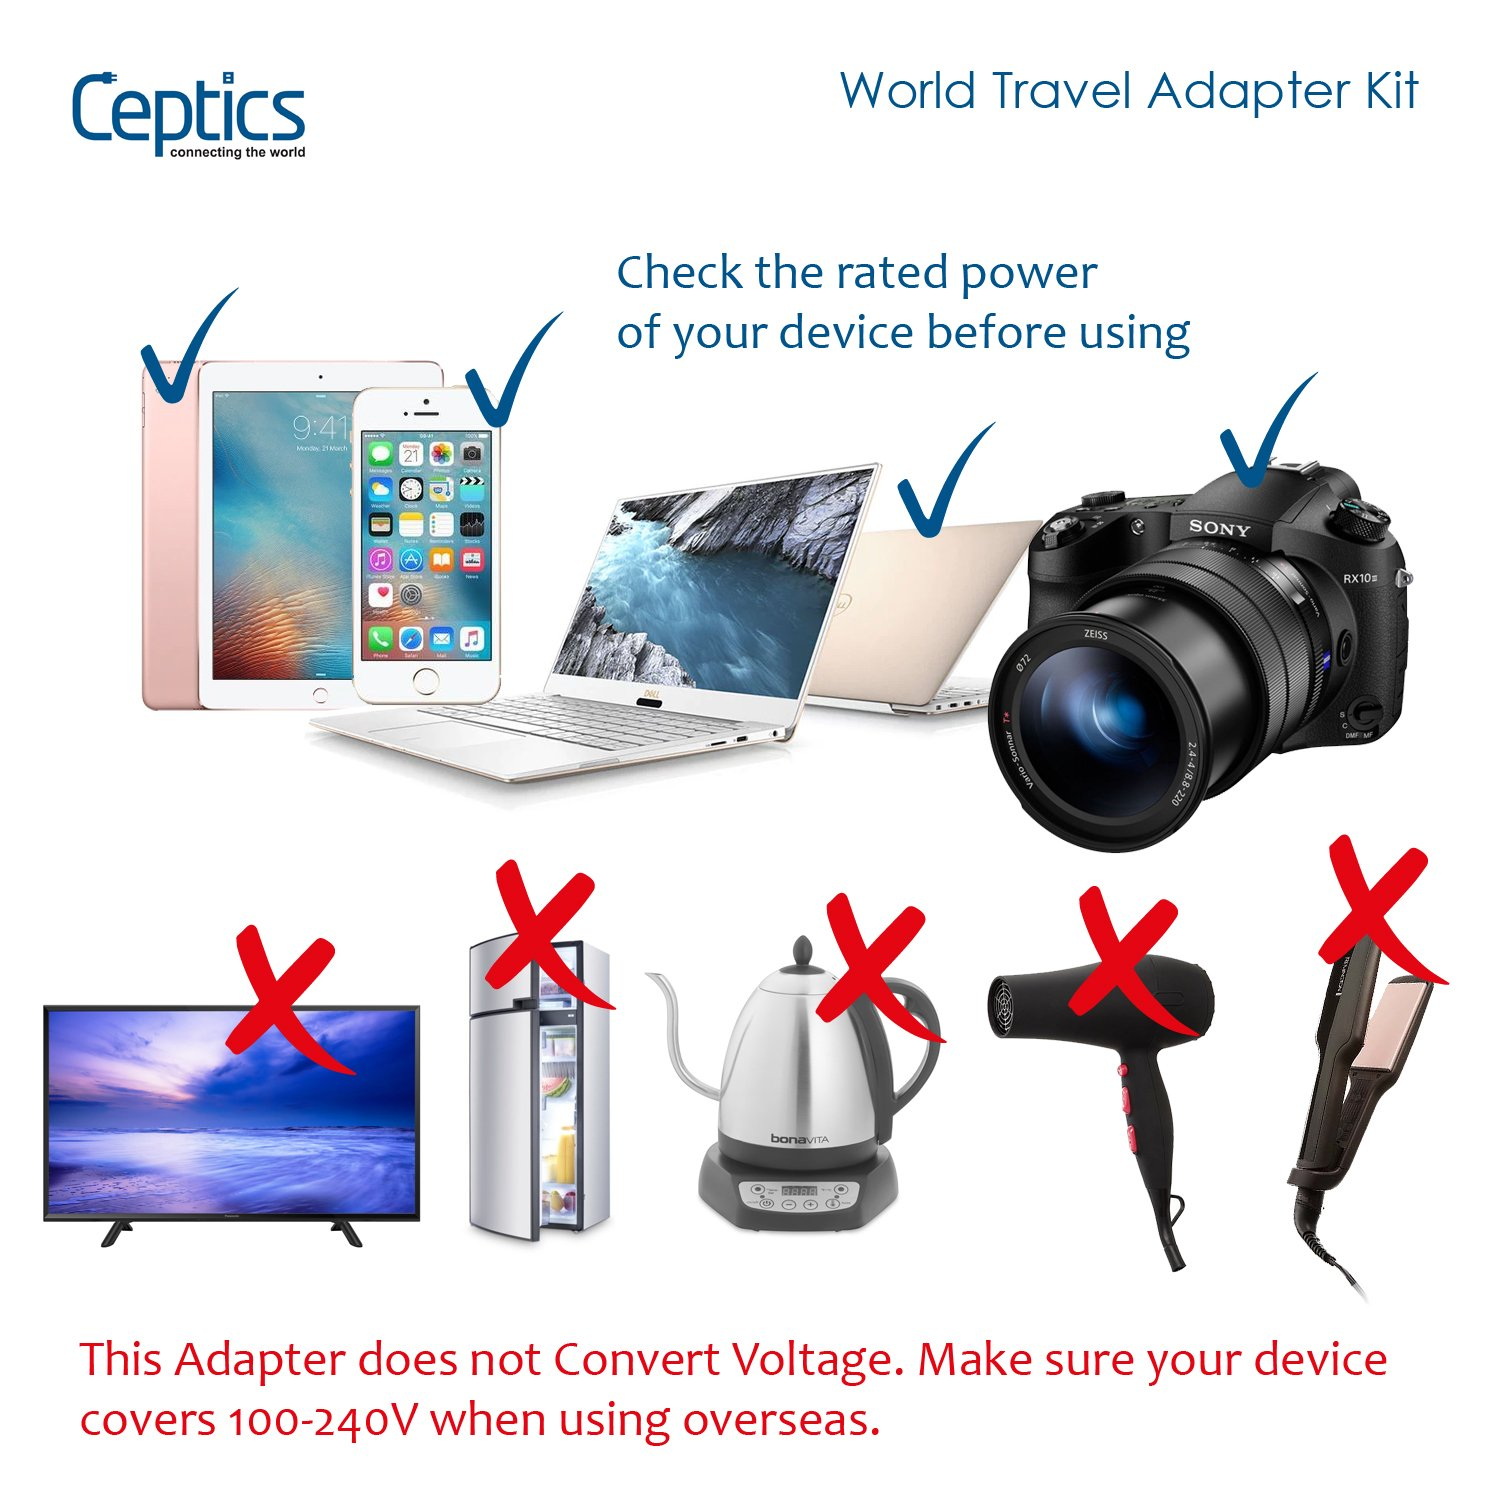 International Power Adapter, Ceptics World Travel USB Type C QC 3.0 18W PD Plug Adaptor Kit - 3 USB Ports Wall Charger Type I C G A Outlets 110V 220V A/C - 5V D/C - EU Euro US UK - All in One by Ceptics (Image #4)